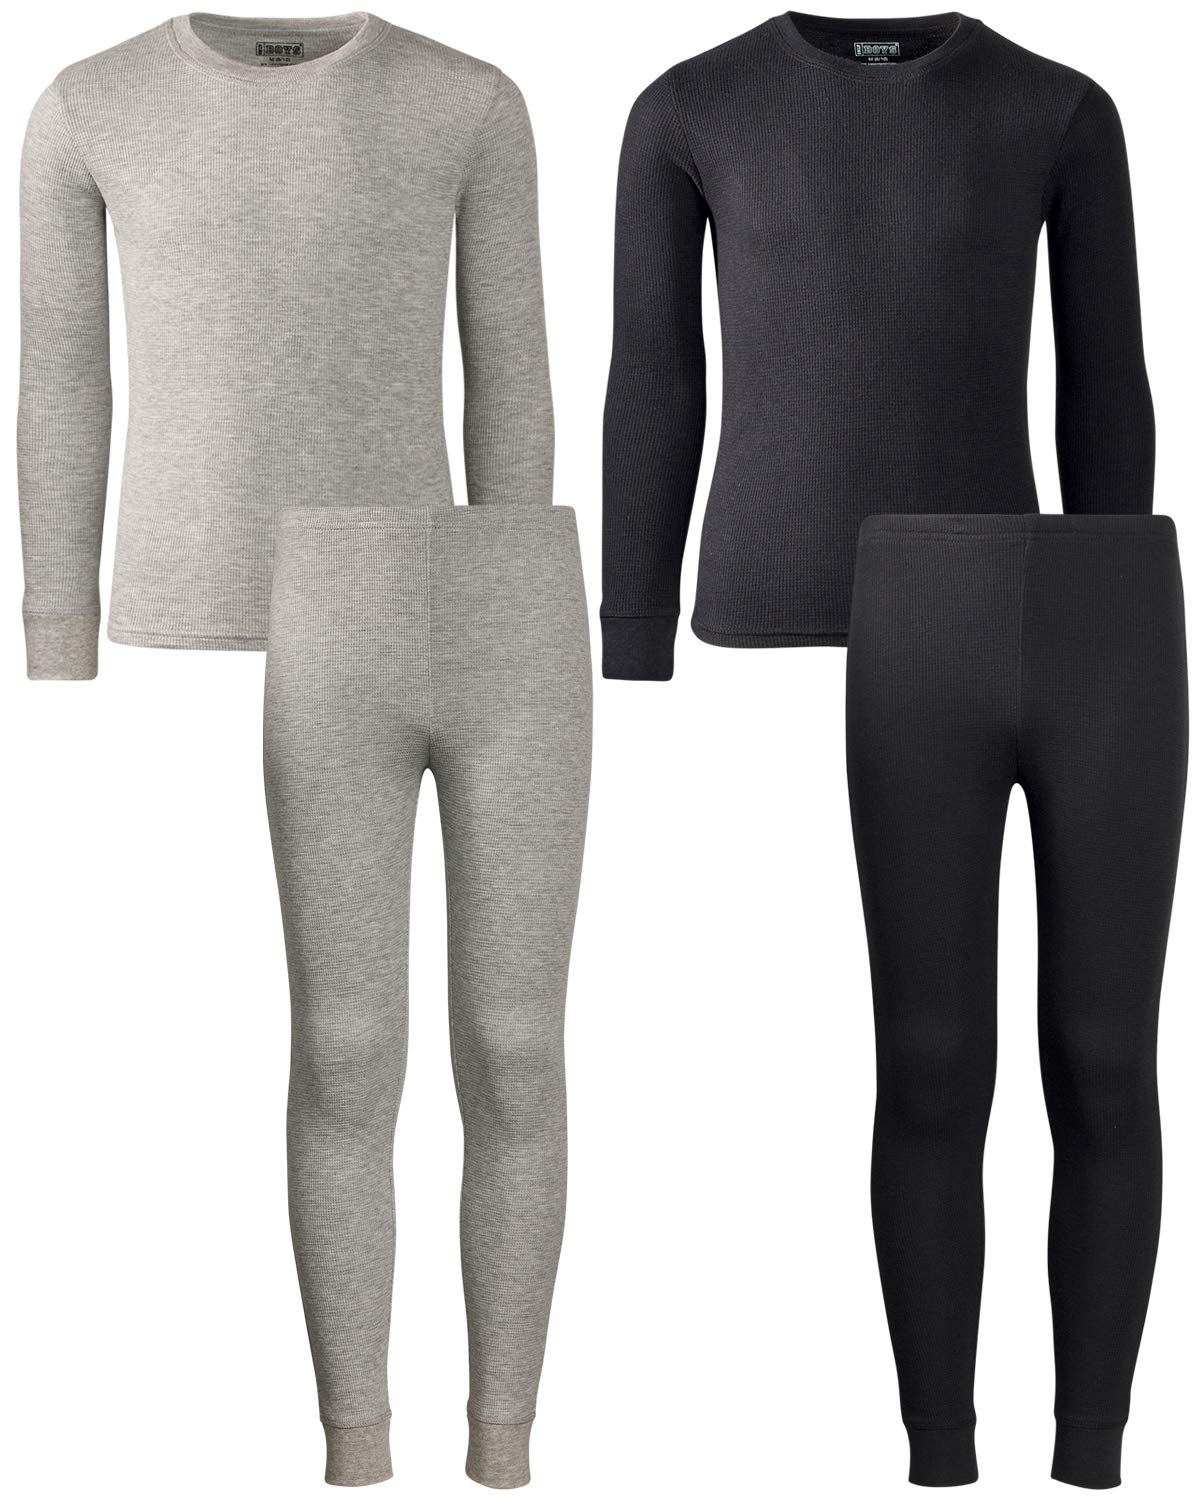 Only Boys 2-Pack Thermal Warm Underwear Top and Pant Set (2 Full Sets), Black/Heather Grey, Size 4/5' by Only Boys